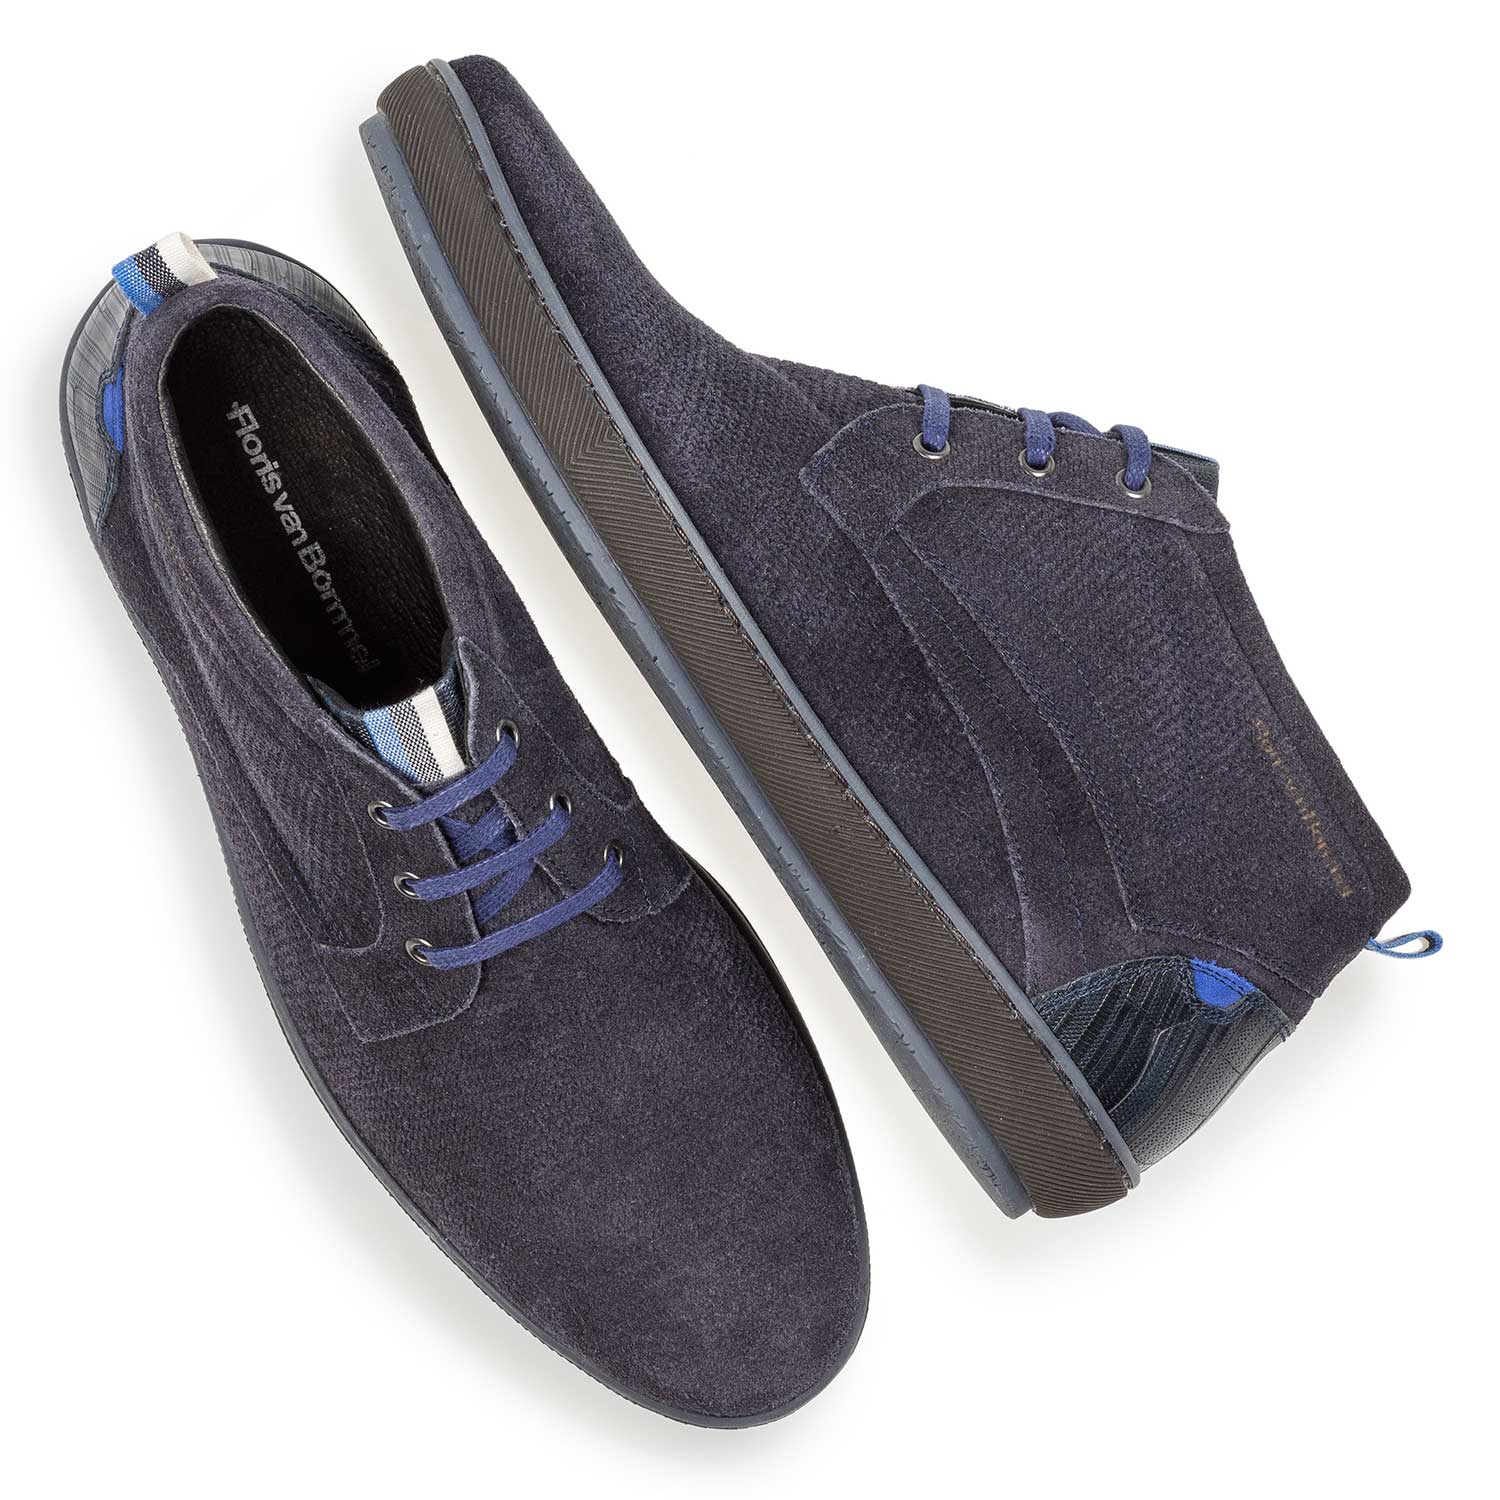 10074/12 - Dark blue printed suede leather lace shoe